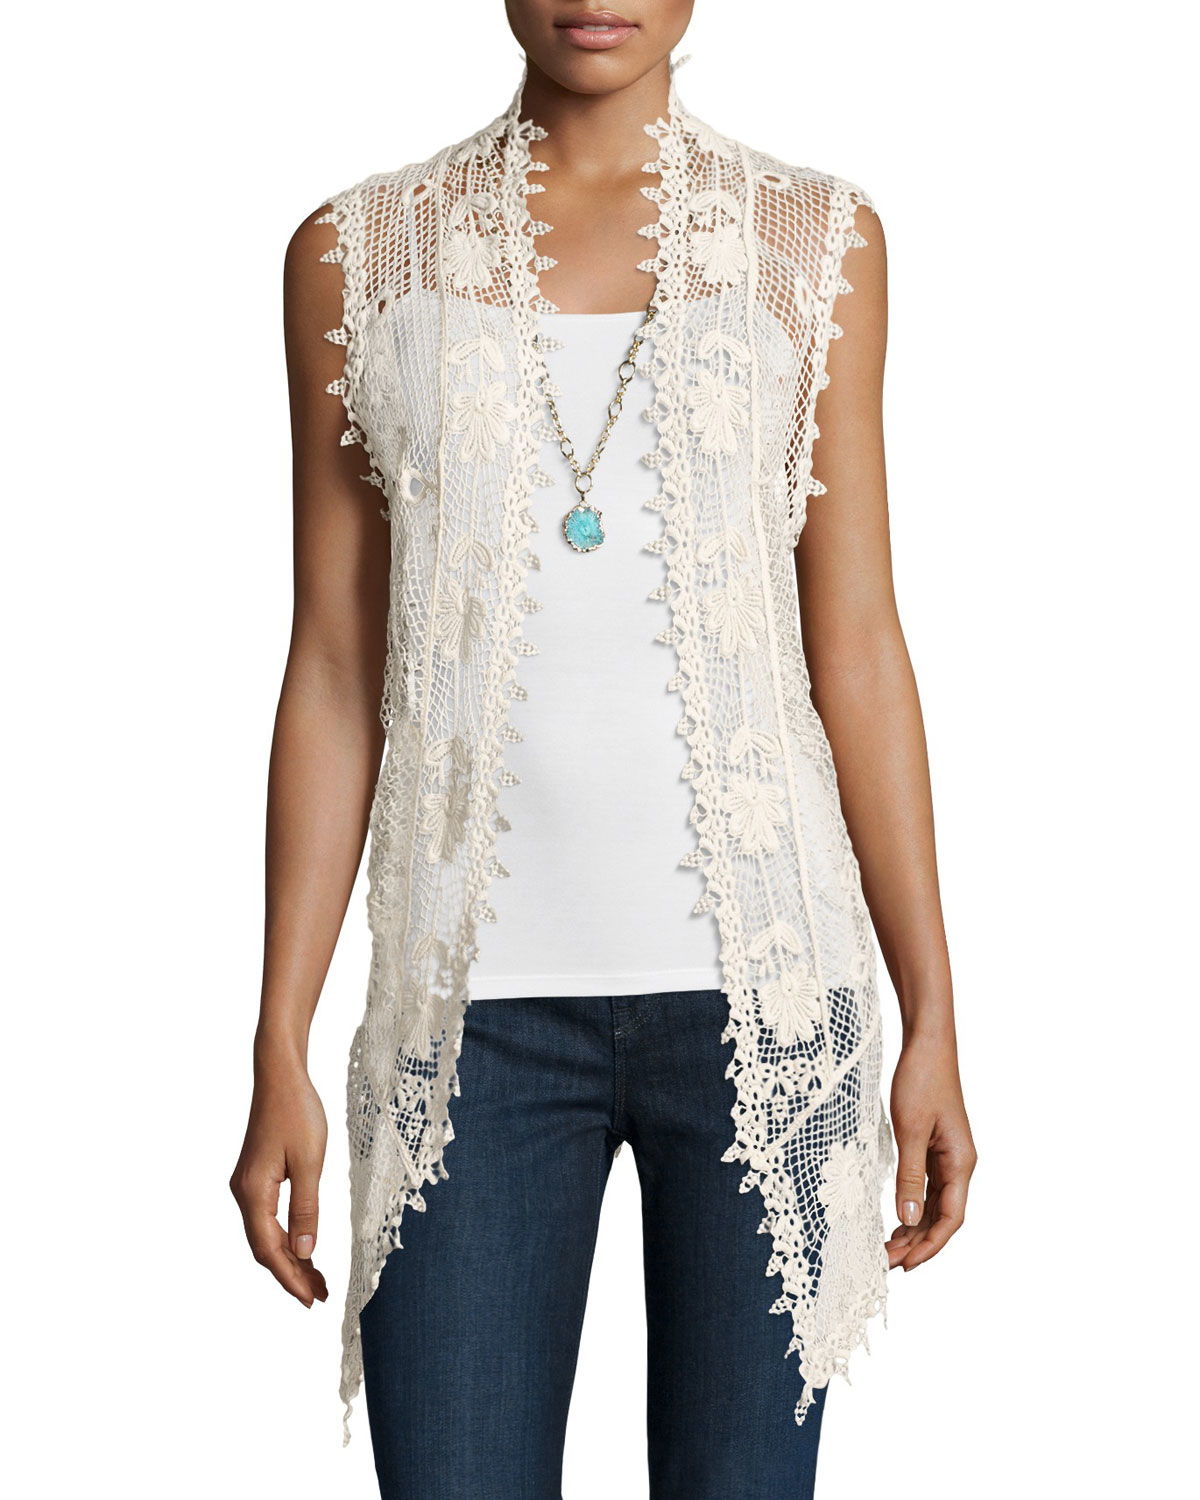 Liquid by sioni Long Sleeveless Crochet Vest in Natural | Lyst